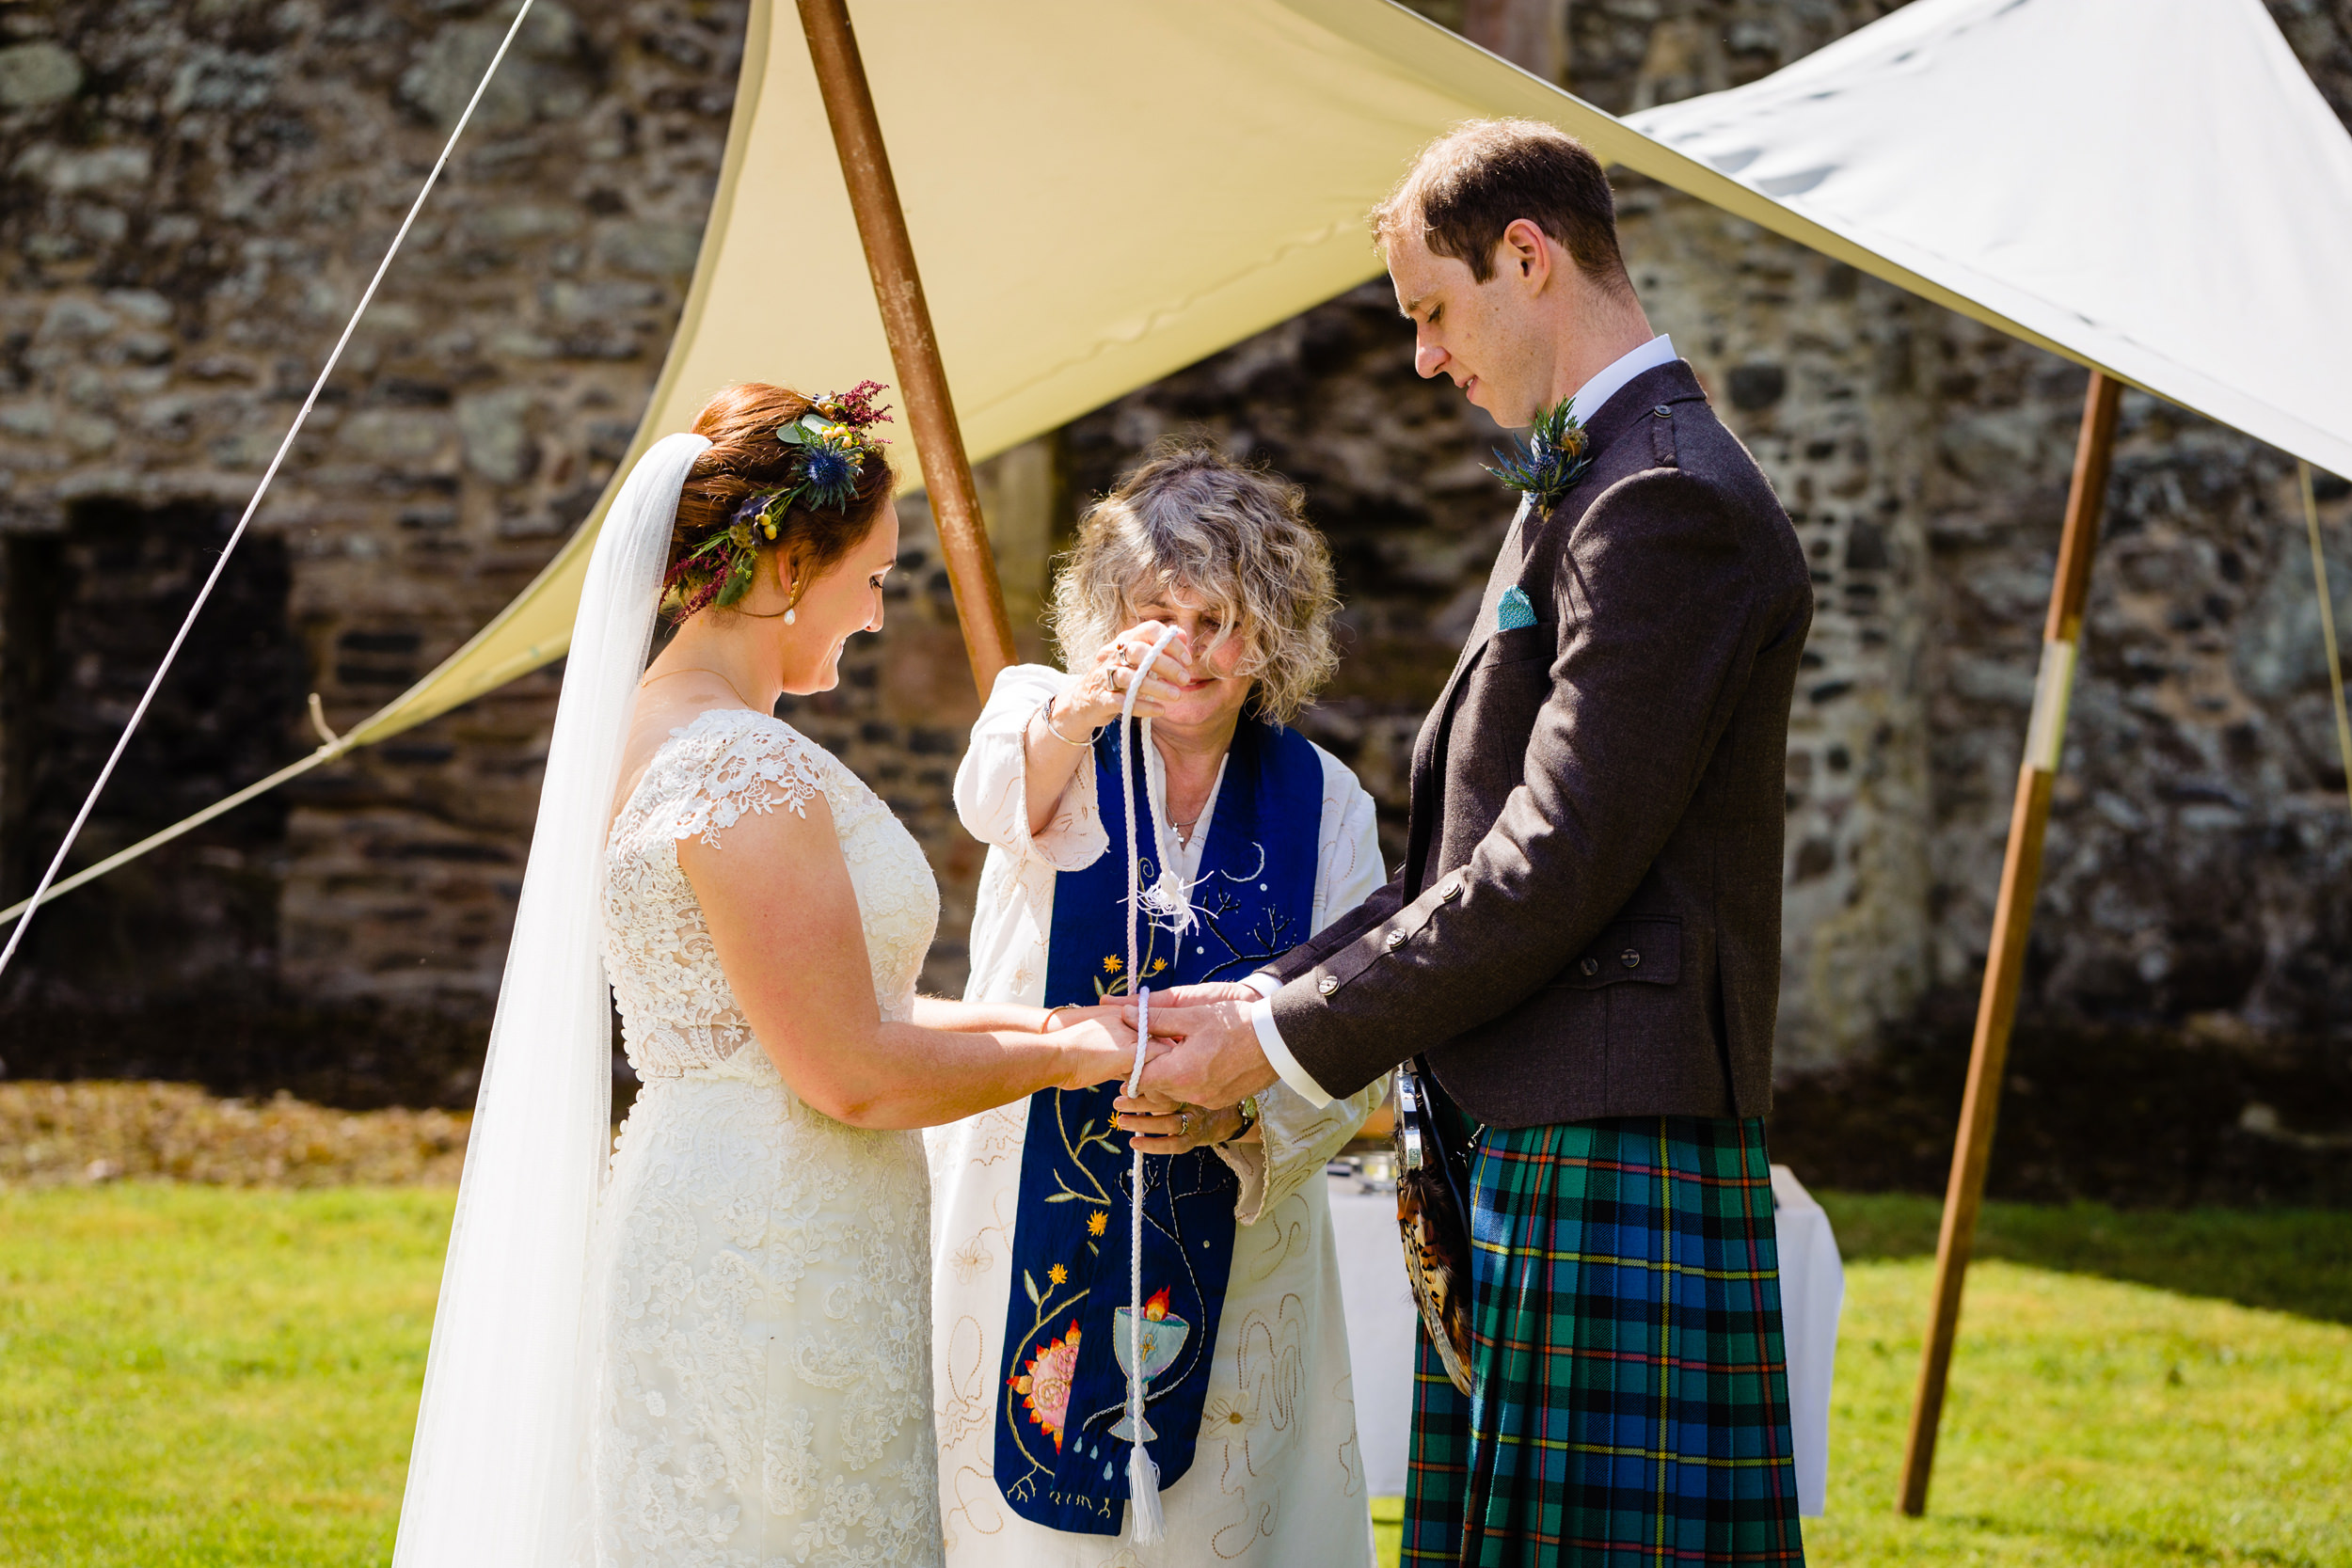 hand fastening ceremony. scotland wedding photography by emma and rich.